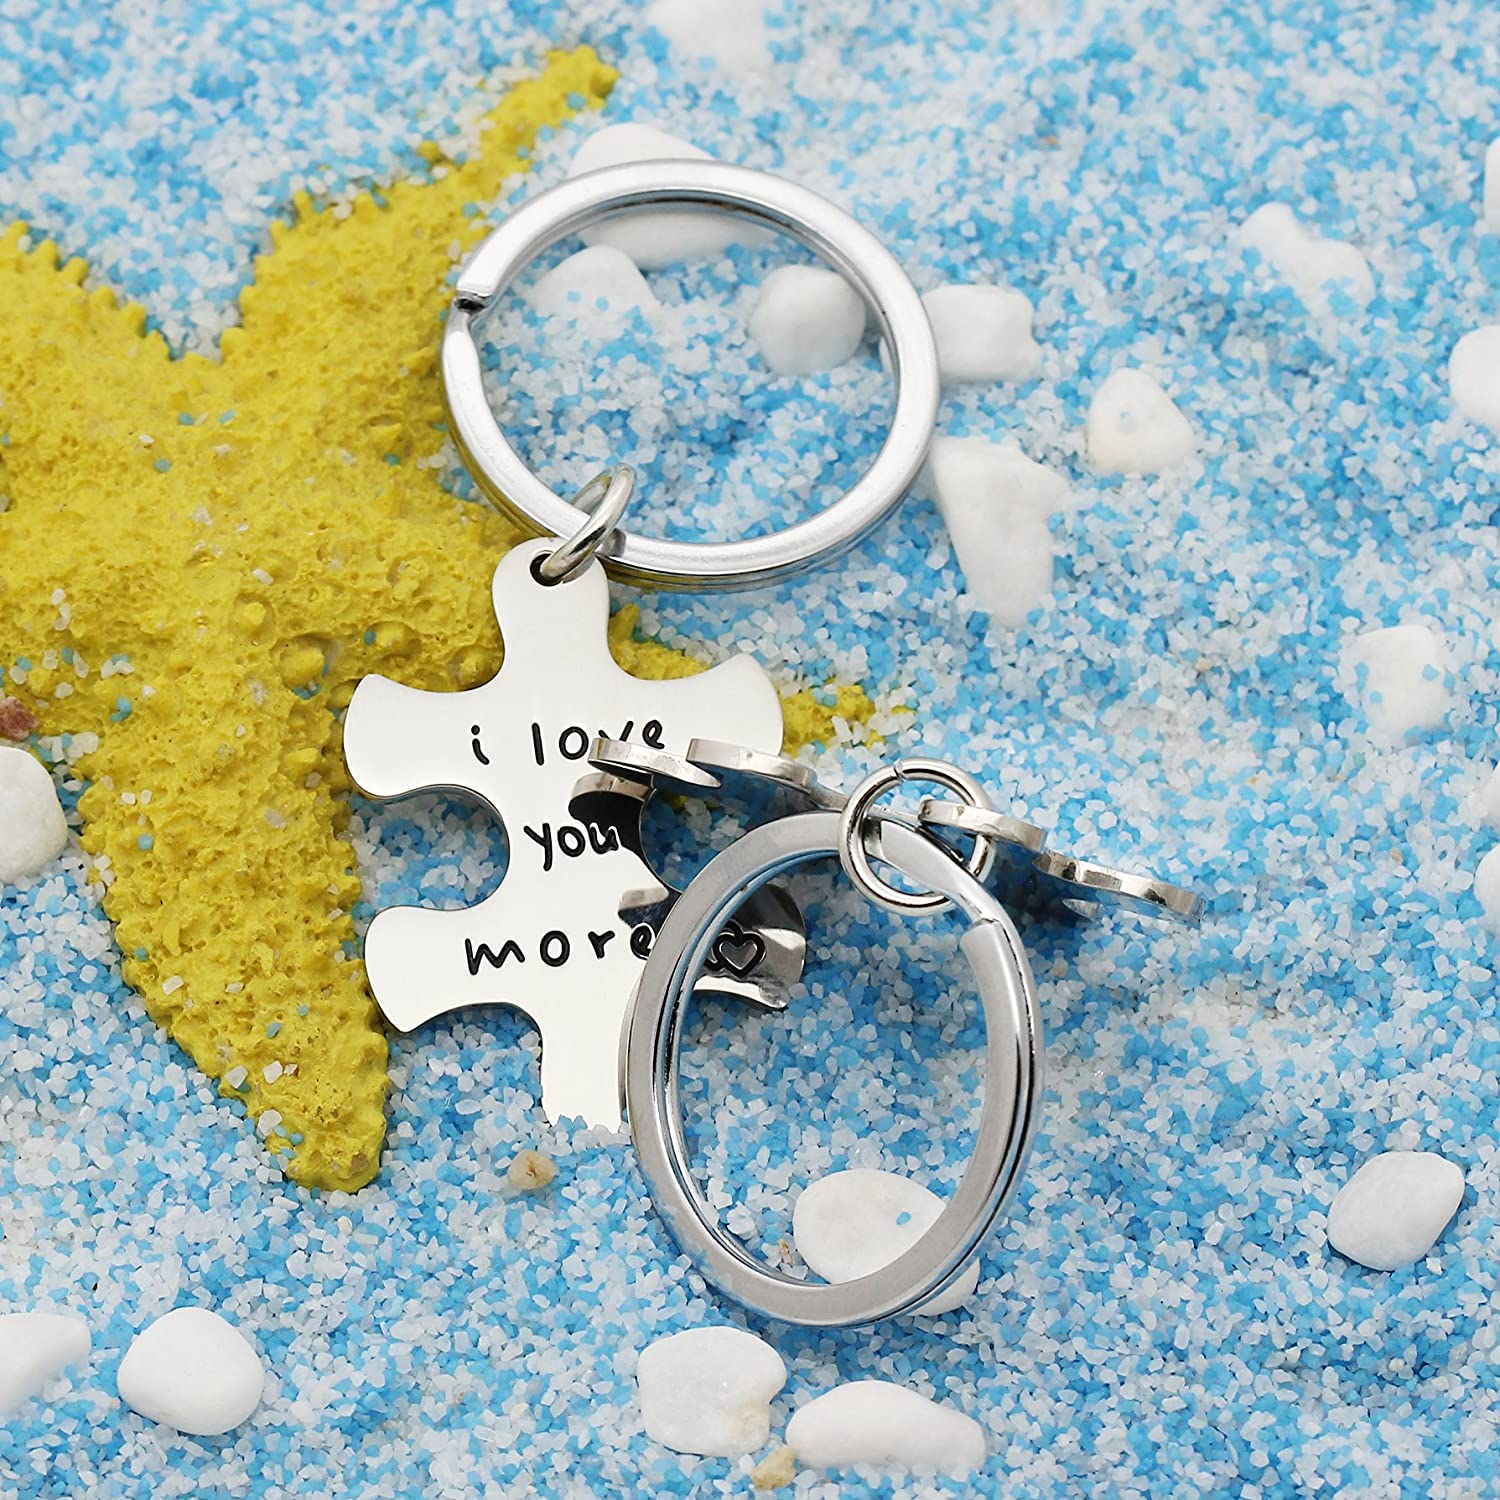 2pcs Couple Key Chain Set Valentine GiftsI Love More,I Love You Most - Puzzle Stainless Steel lauhonmin